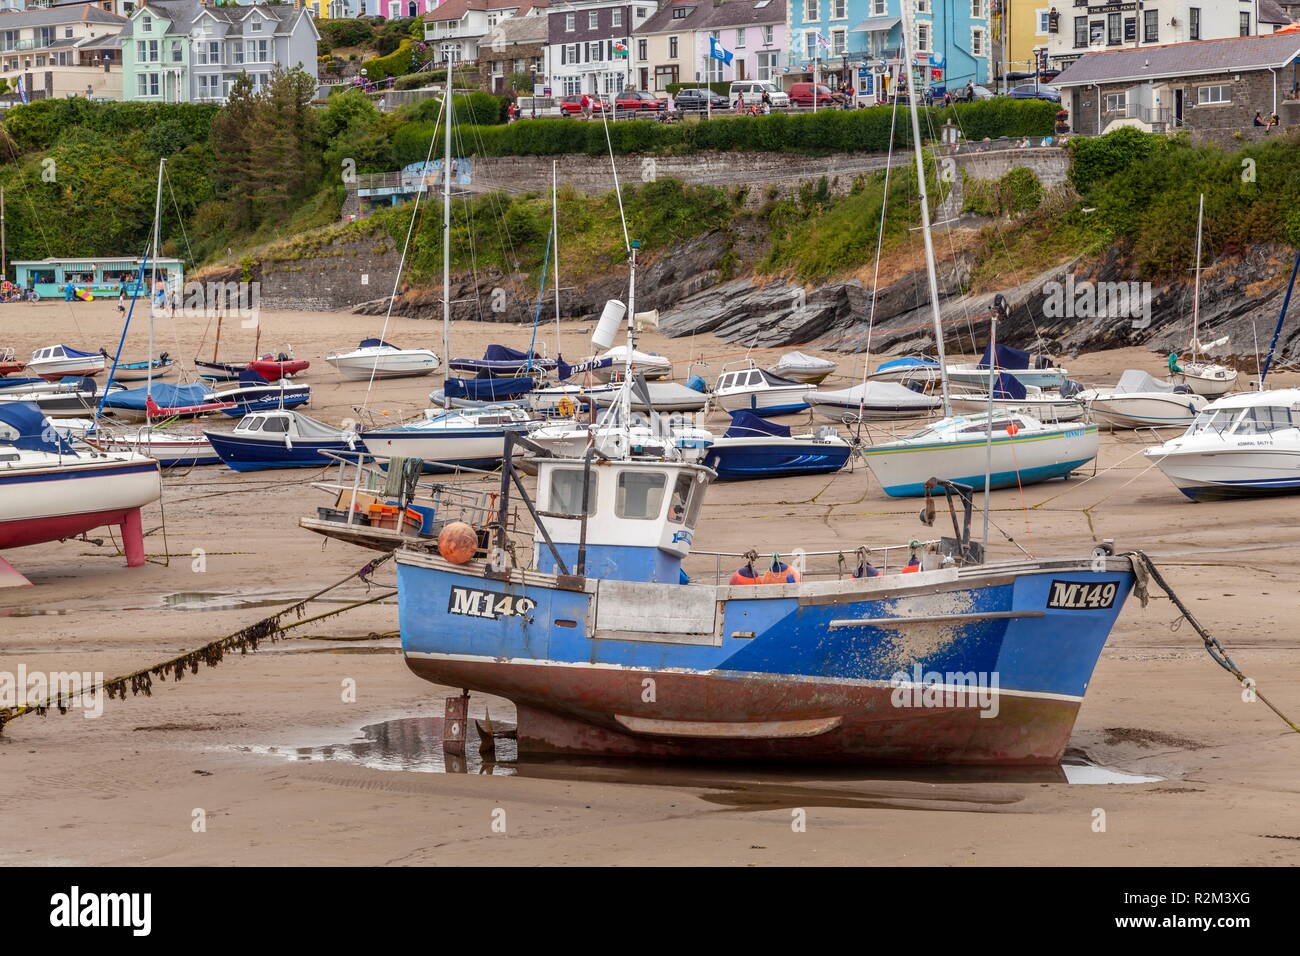 A lobster fishing vessel sits on the sand at low tide, New Quay, wales, Ceredigion - Stock Image